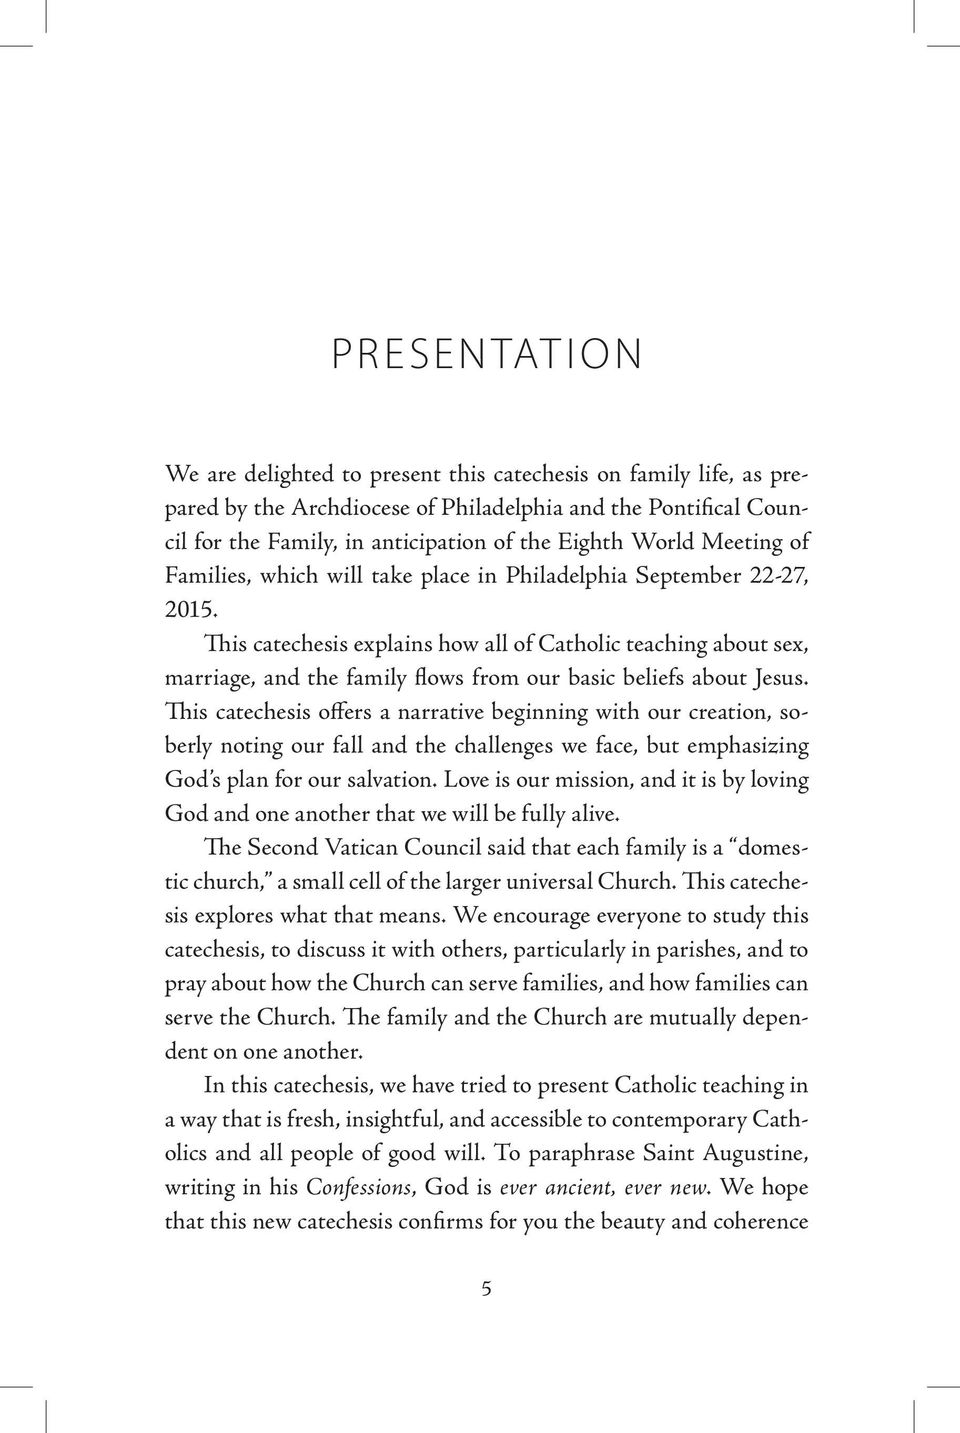 This catechesis explains how all of Catholic teaching about sex, marriage, and the family flows from our basic beliefs about Jesus.